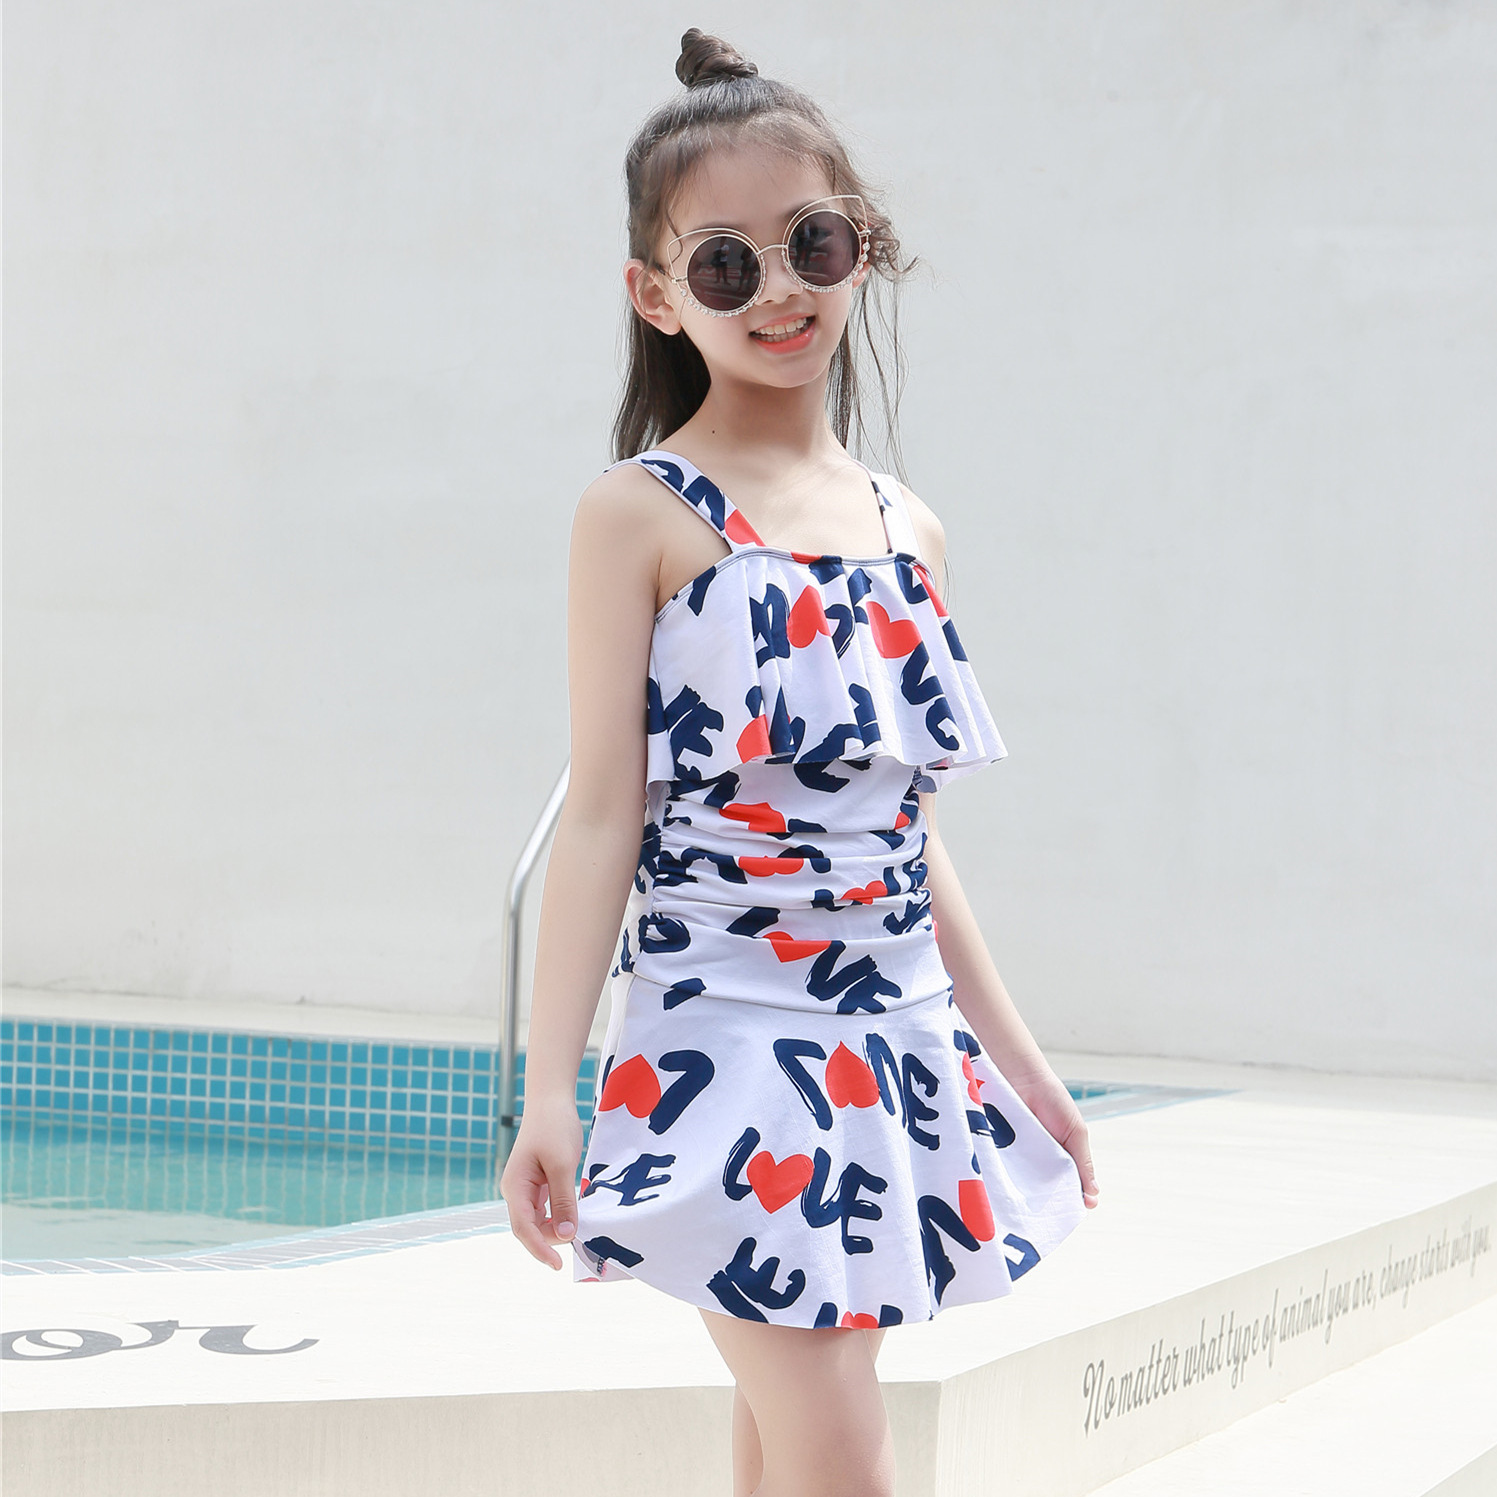 Korean-style Students Fashion Printed Conservative Belly Covering Large Hem One-piece Swimming Suit Boxer Underpants Deconstruct